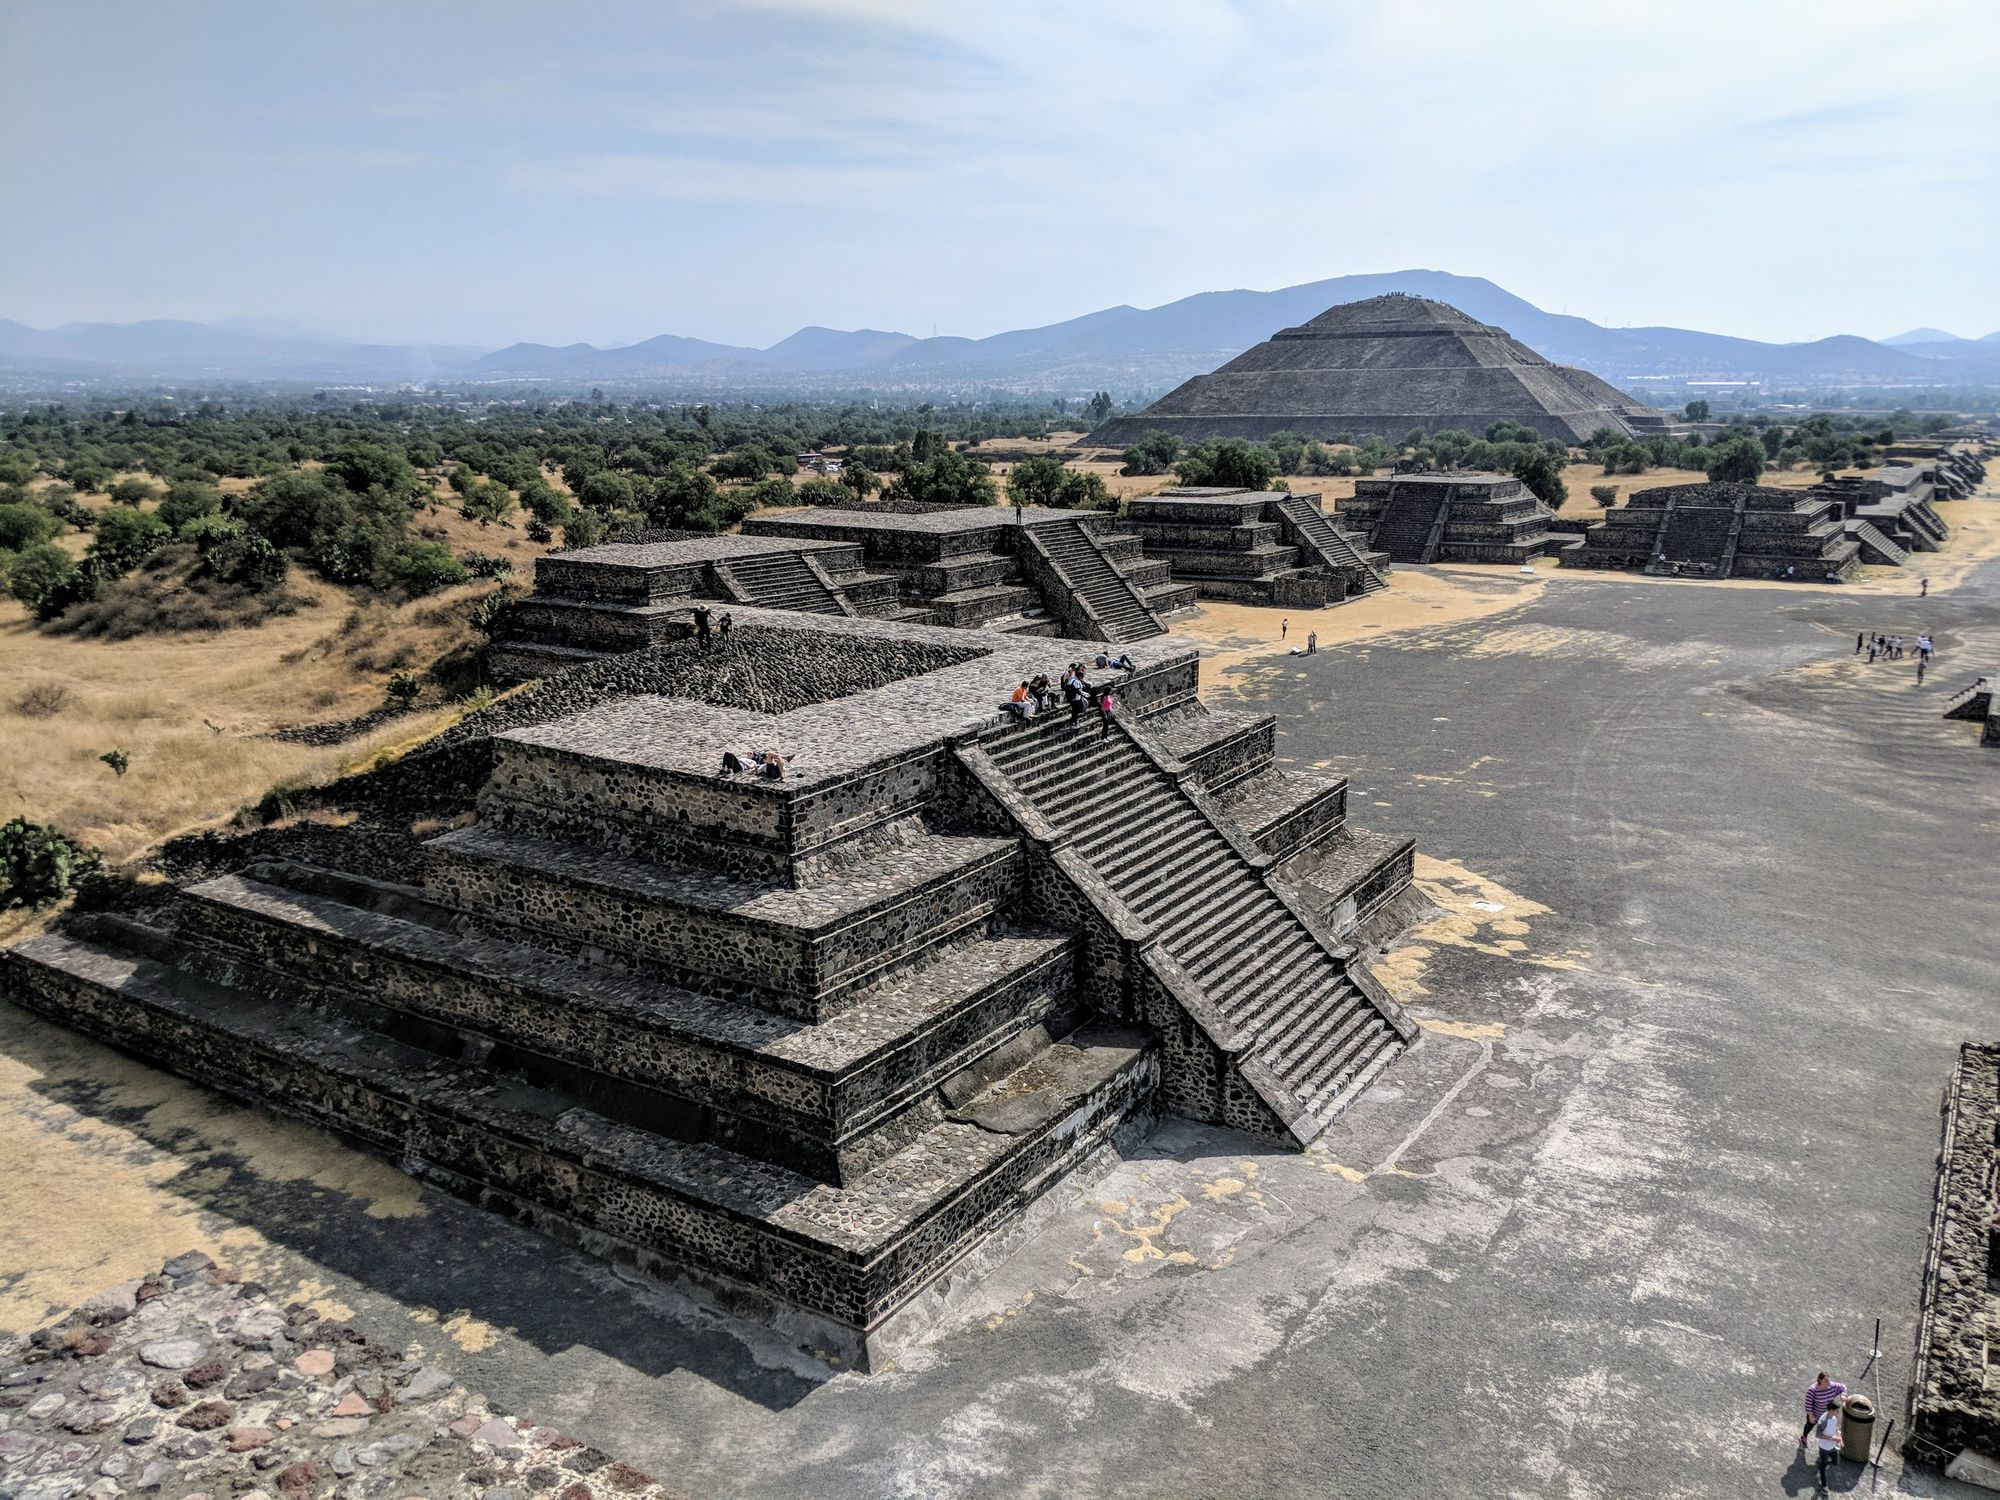 10 major achievements of the ancient aztec civilization - HD 2000×1500